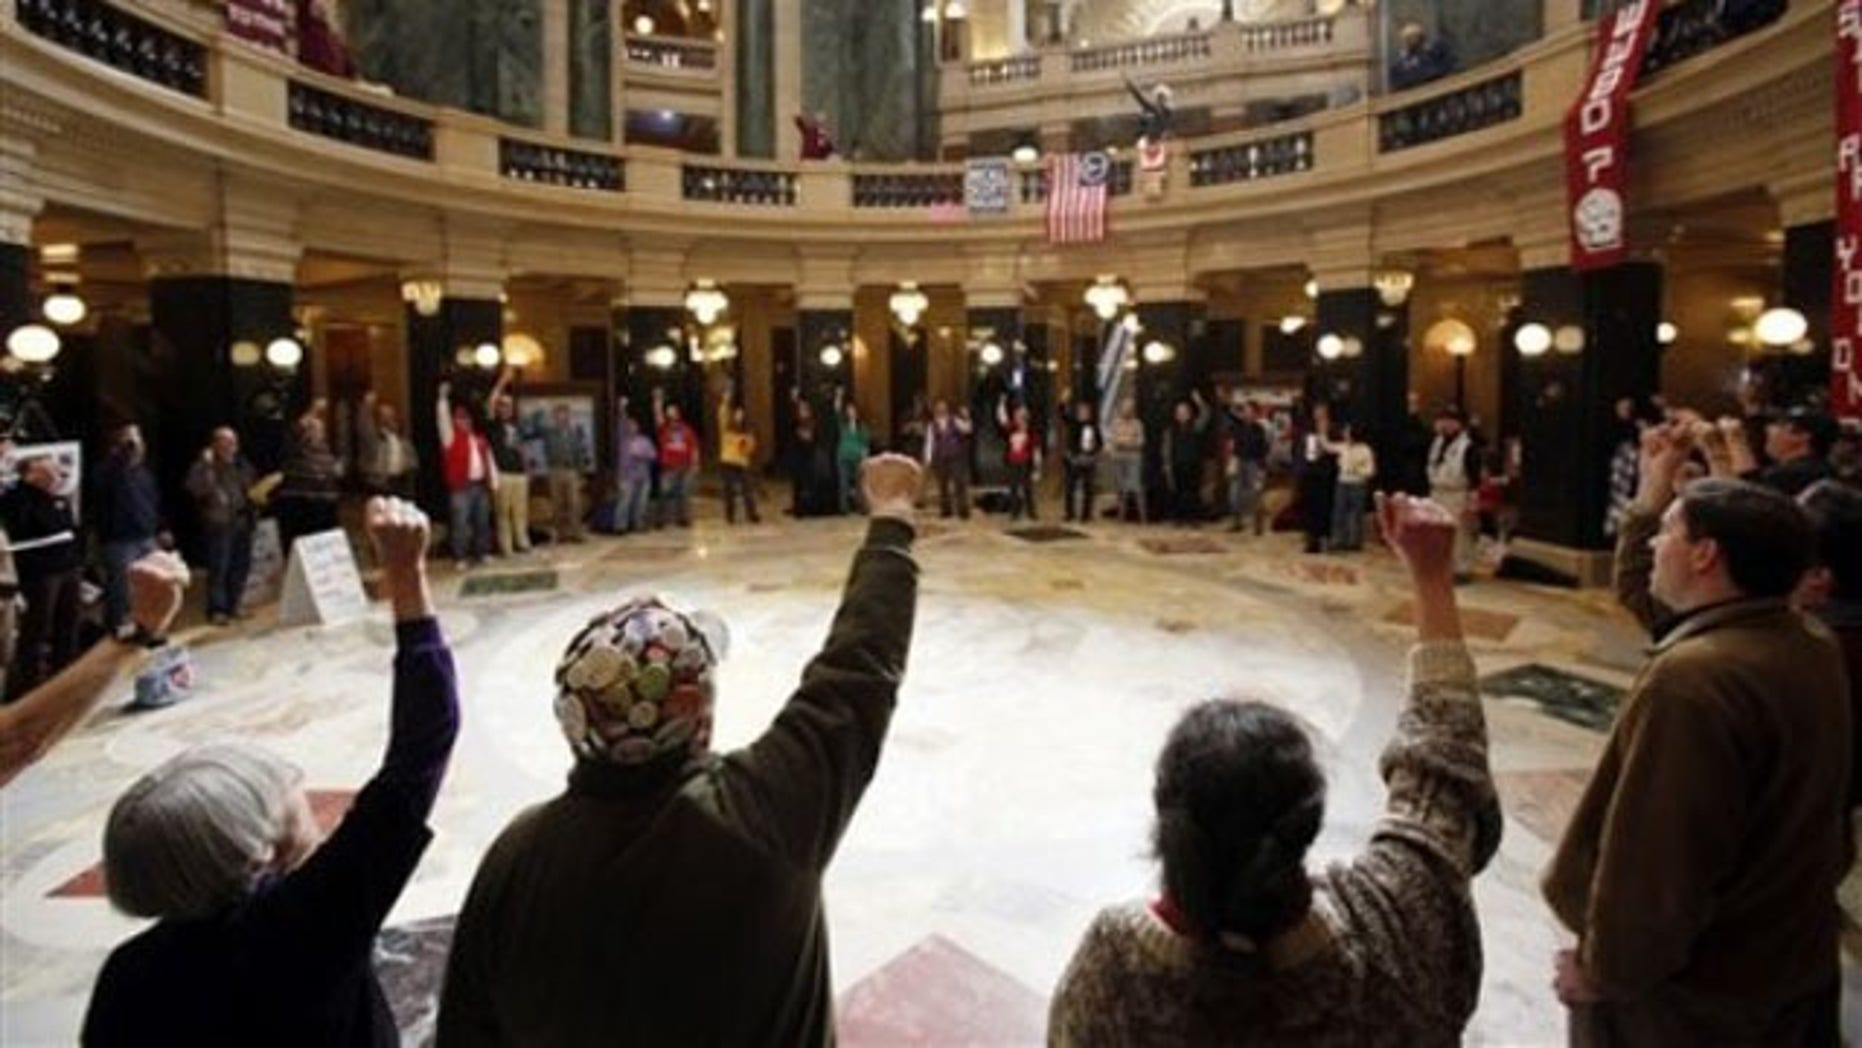 Feb. 27, 2012: Protesters participate in a daily protest at the state Capitol in Madison, Wis.